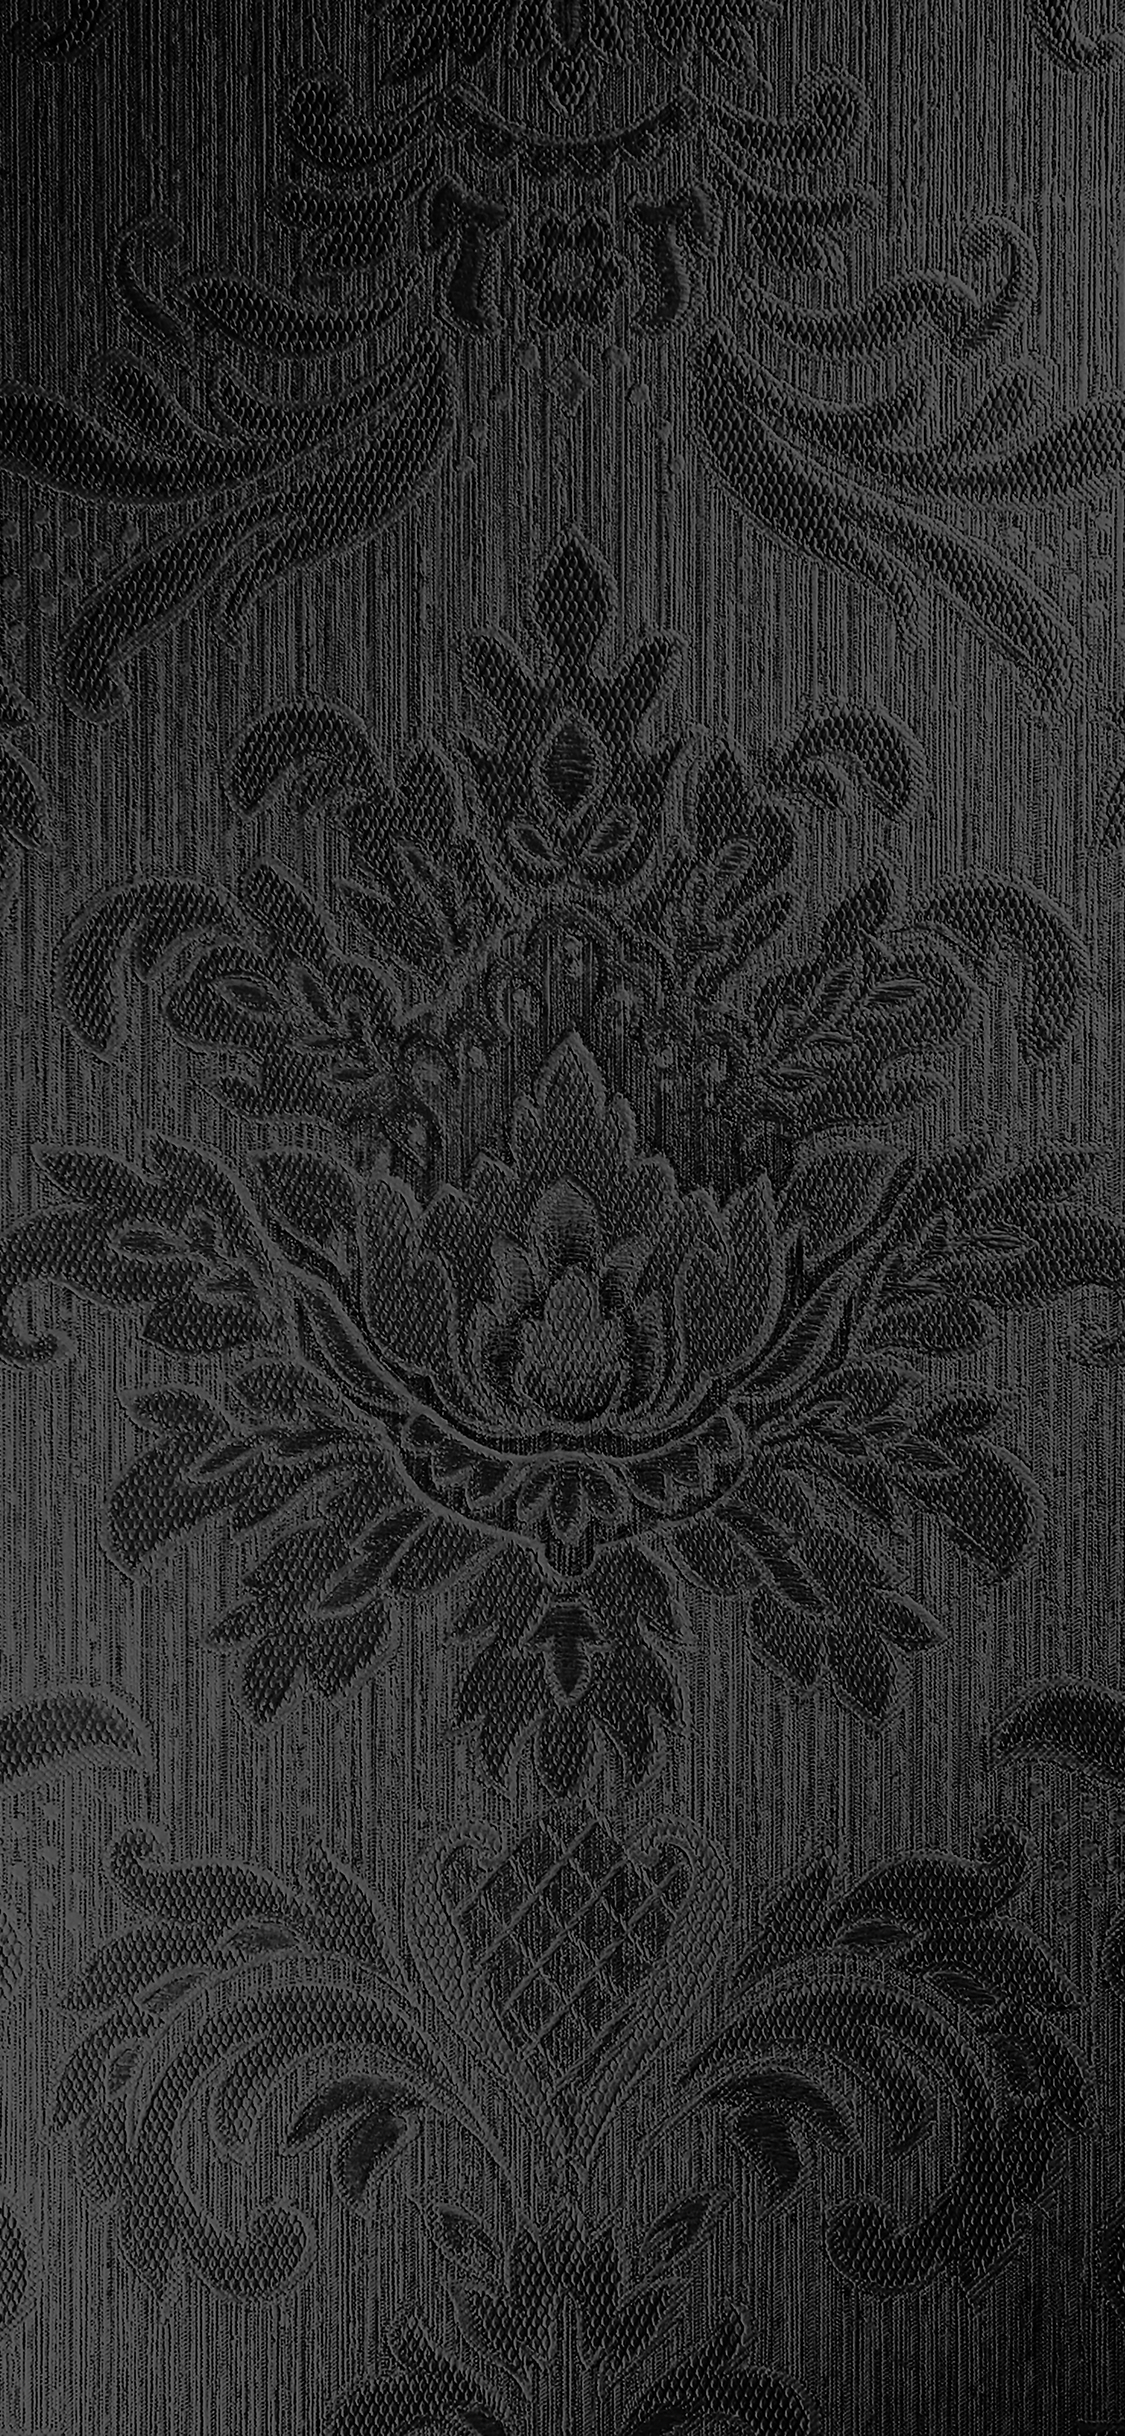 Iphone11papers Com Iphone11 Wallpaper Vf68 Vintage Art Bw Dark Texture Pattern